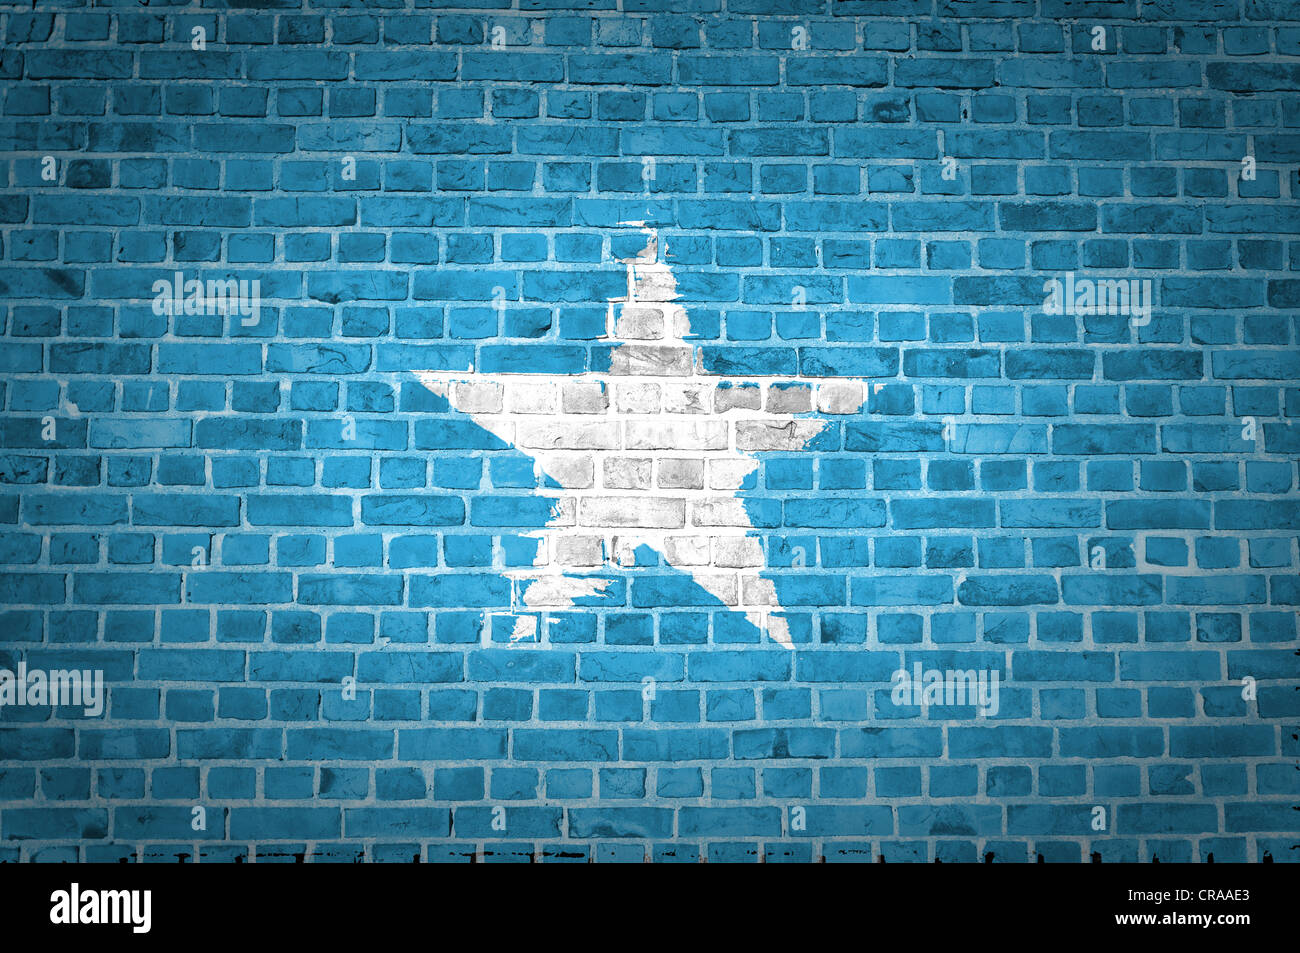 An image of the Somalia flag painted on a brick wall in an urban location - Stock Image